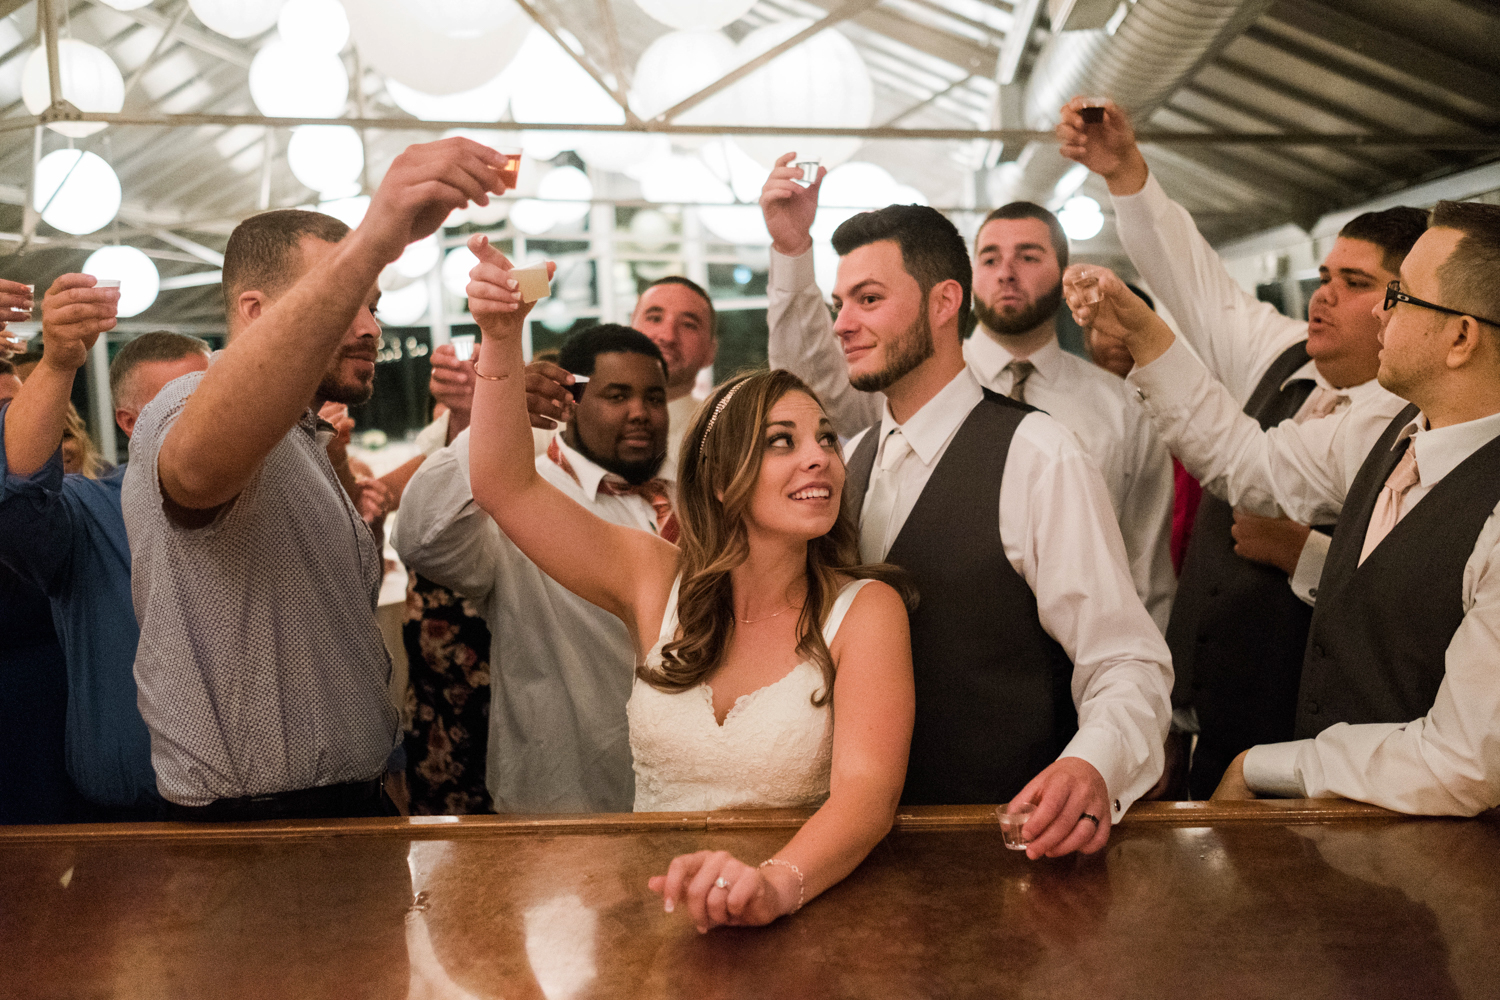 Honorable Mention 2 |Cassandra & Josh | Farmington Gardens  Fuji XT2 | 16 f1.4  I happened to walk out of the ballroom into the bar area at the perfect moment to grab this photo. Thanks to the bartenders at Farmington Gardens for giving me the chance to capture this awesome moment.